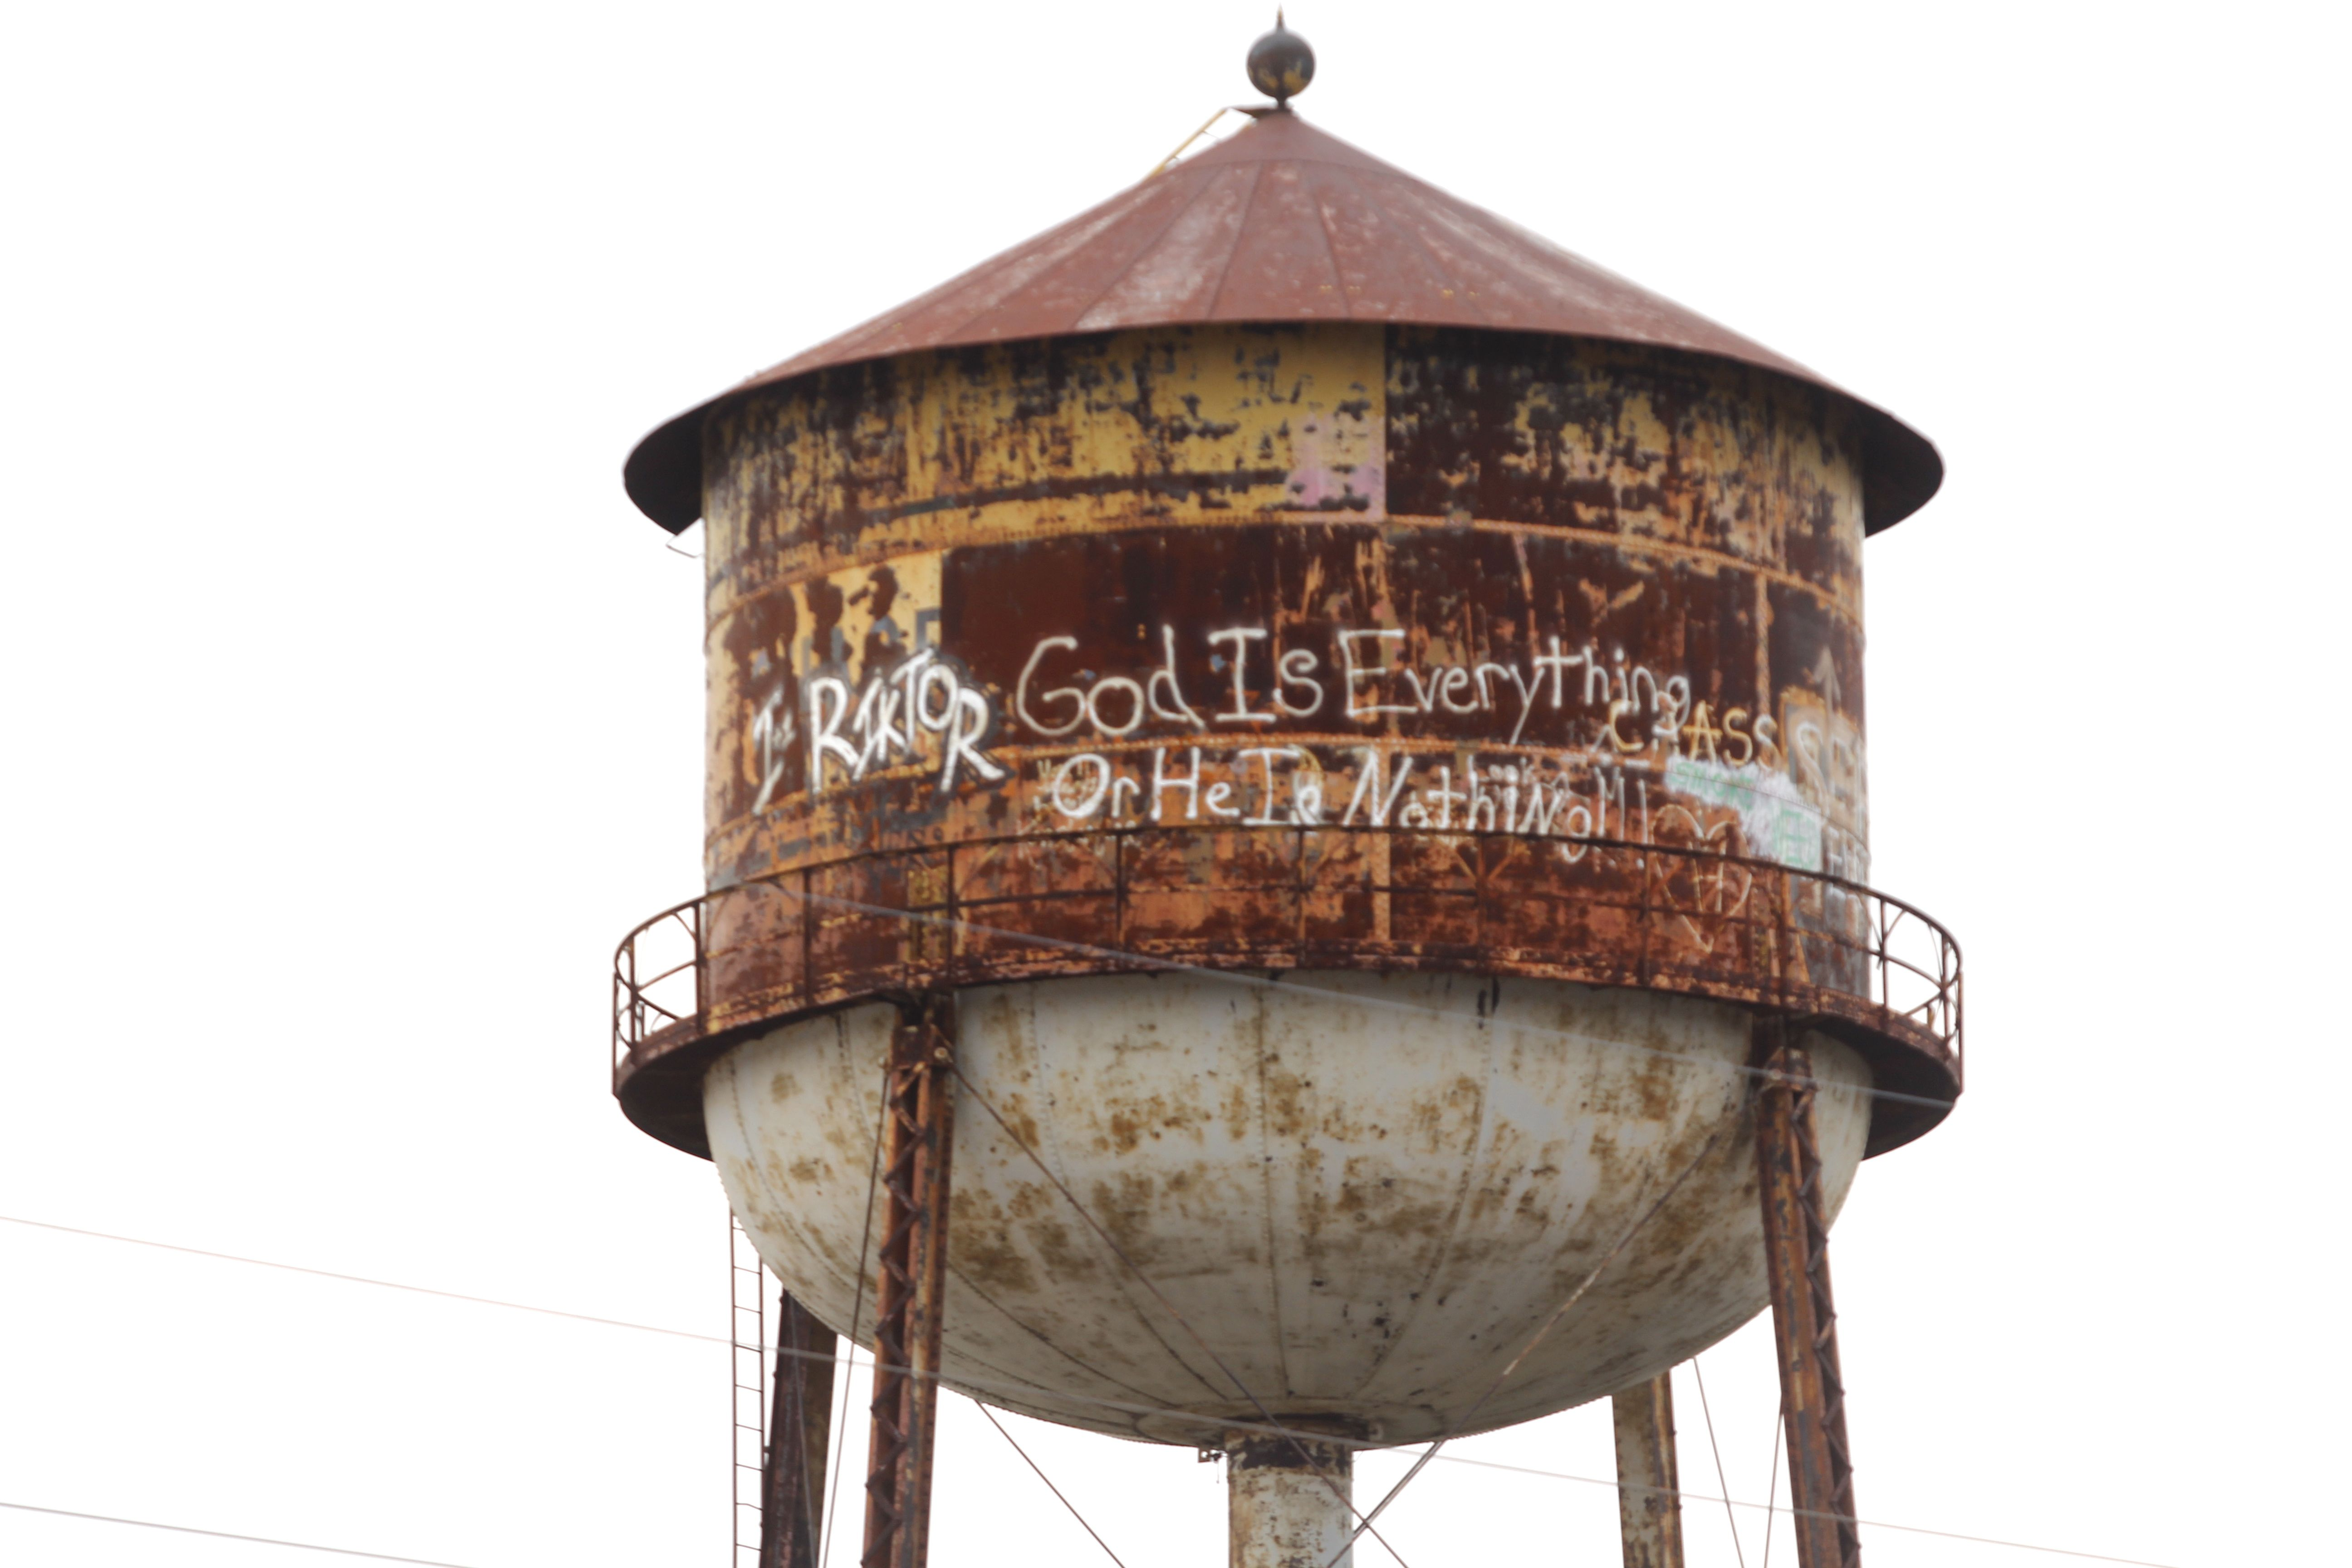 chase st water tower not scary at all athens athens ga water tower pinterest